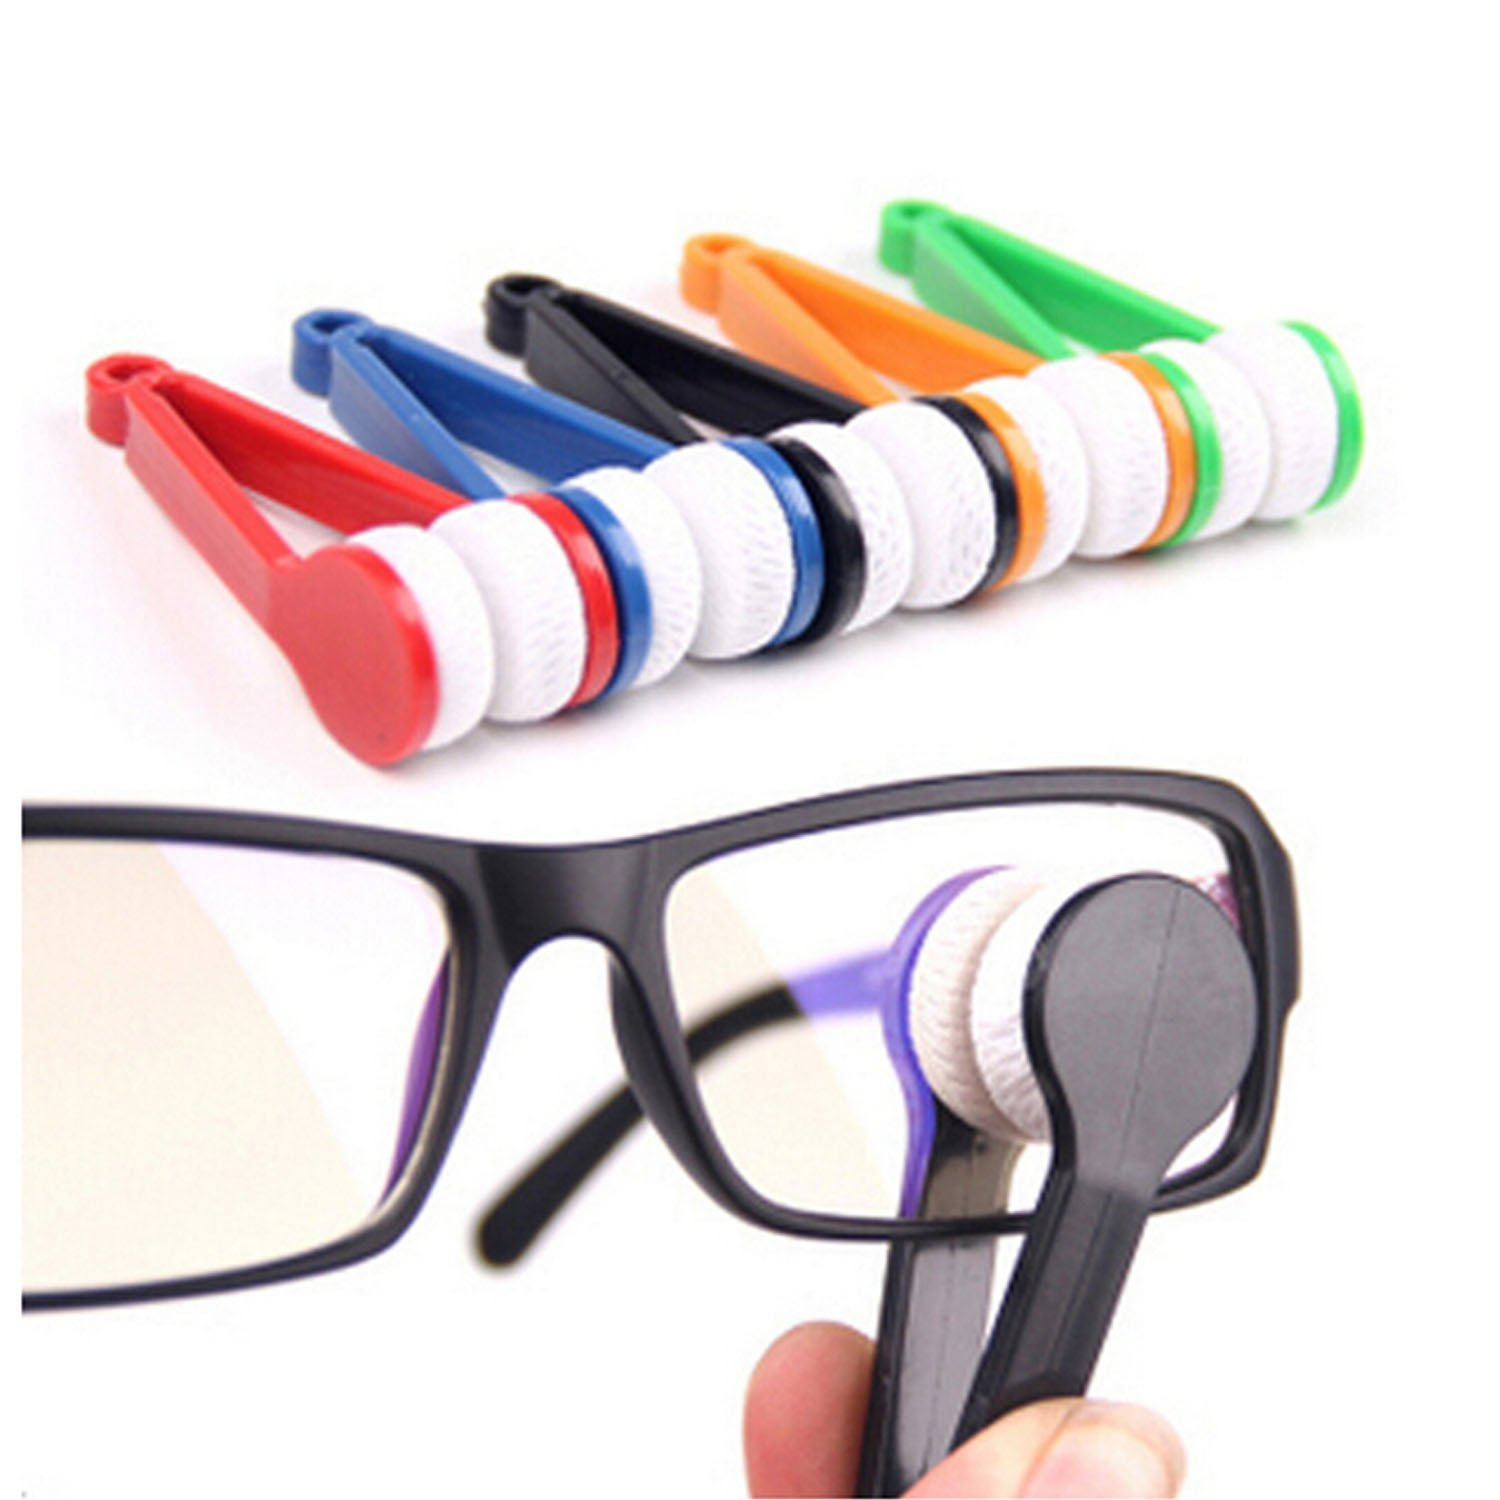 5 Pieces Mini Sun Glasses Eyeglass Microfiber Spectacles Cleaner Soft Brush Cleaning Tool